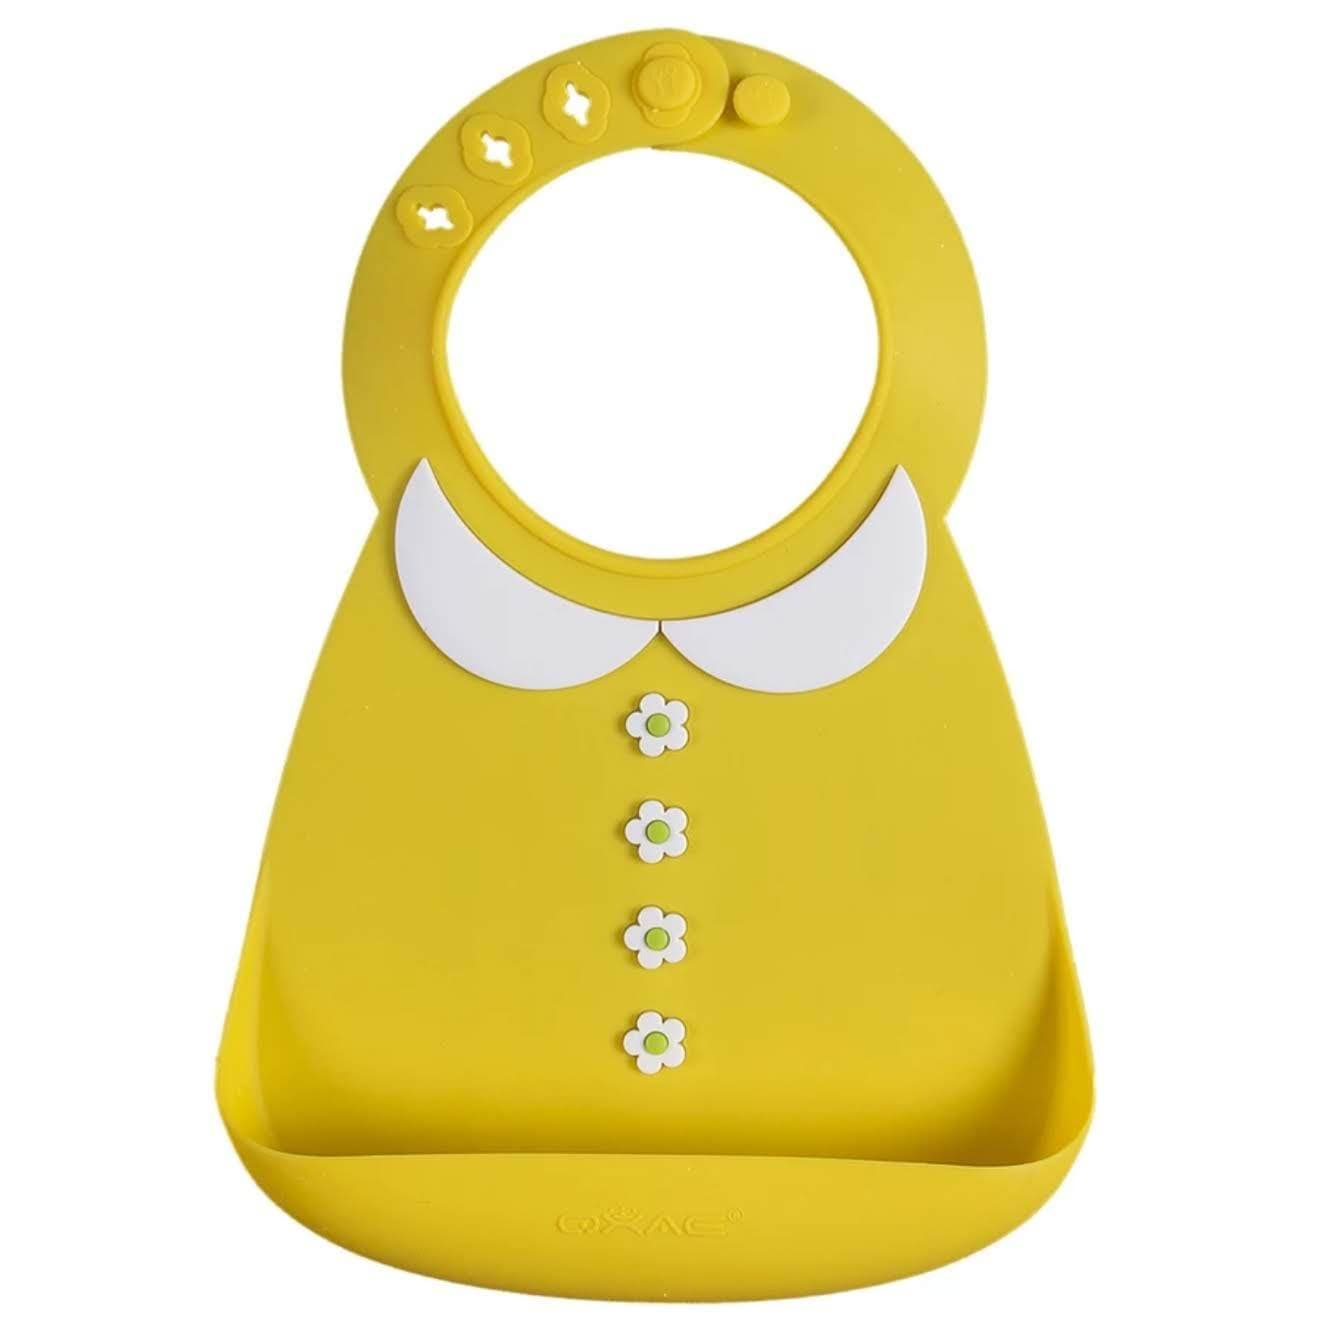 Waterproof Silicone Baby Food-Grade Bibs - Yellow Buttons - Camanda Baby